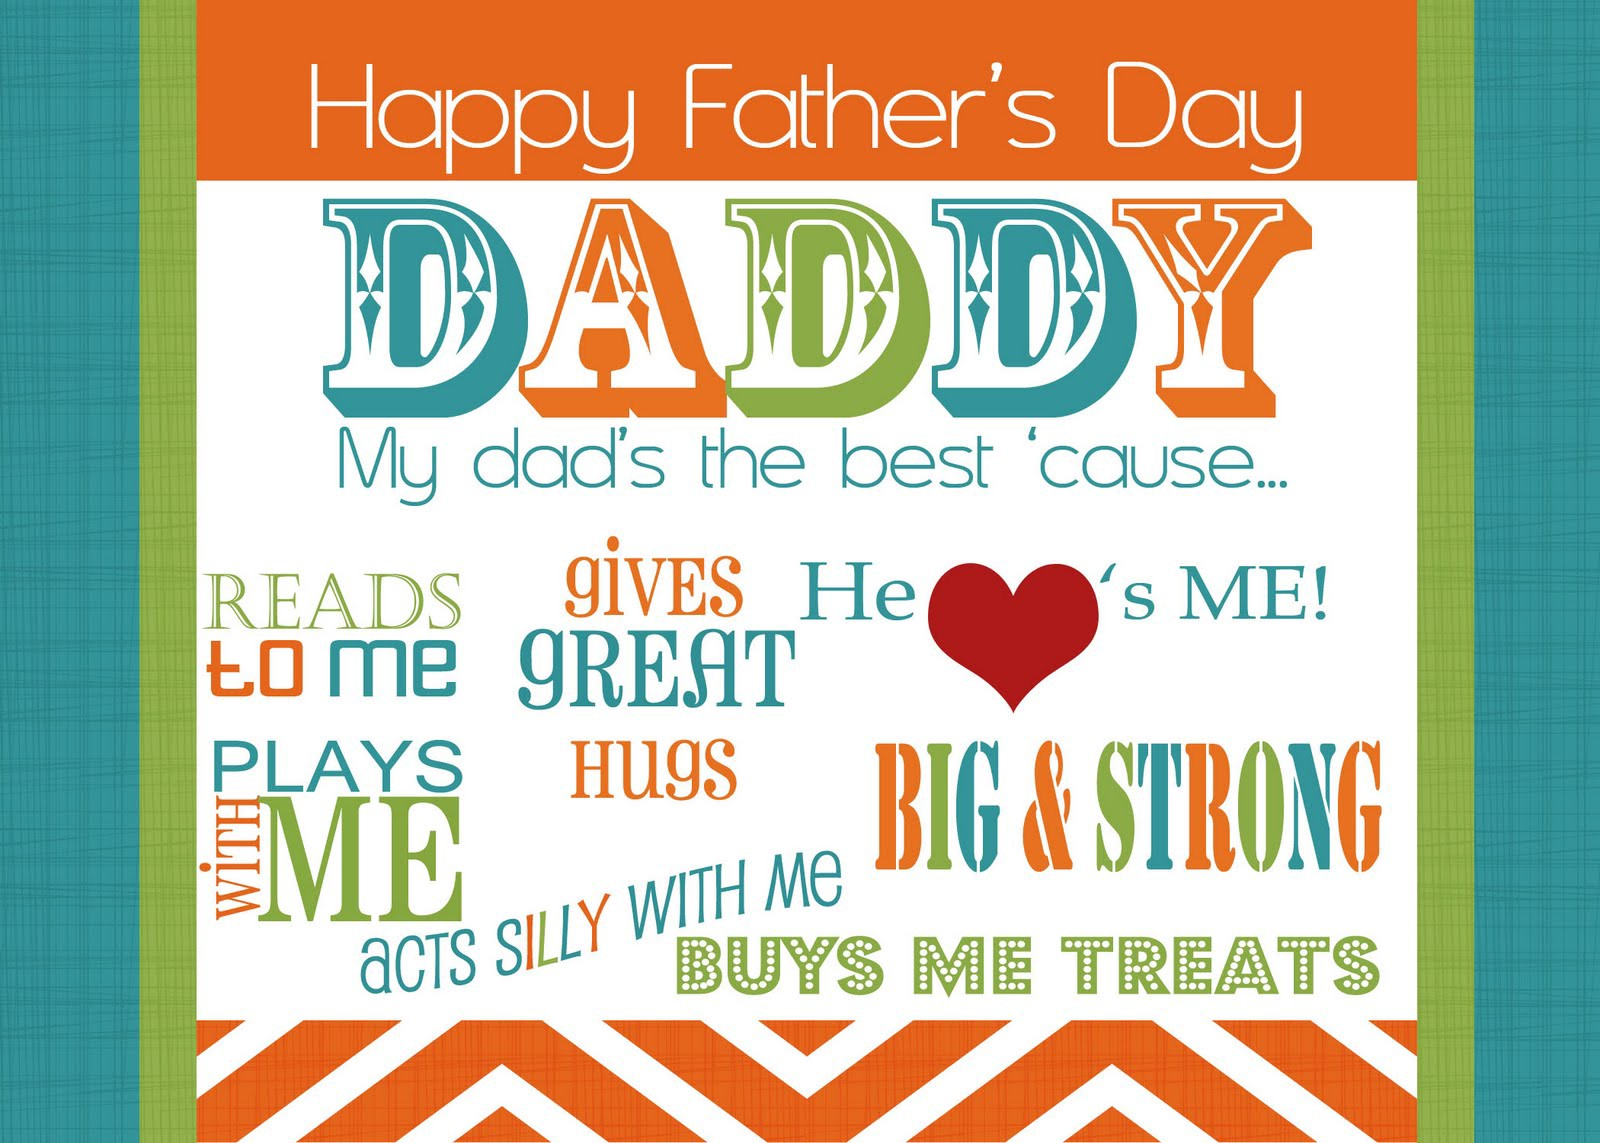 Fathers Day Greeting Cards Presents From The Heart